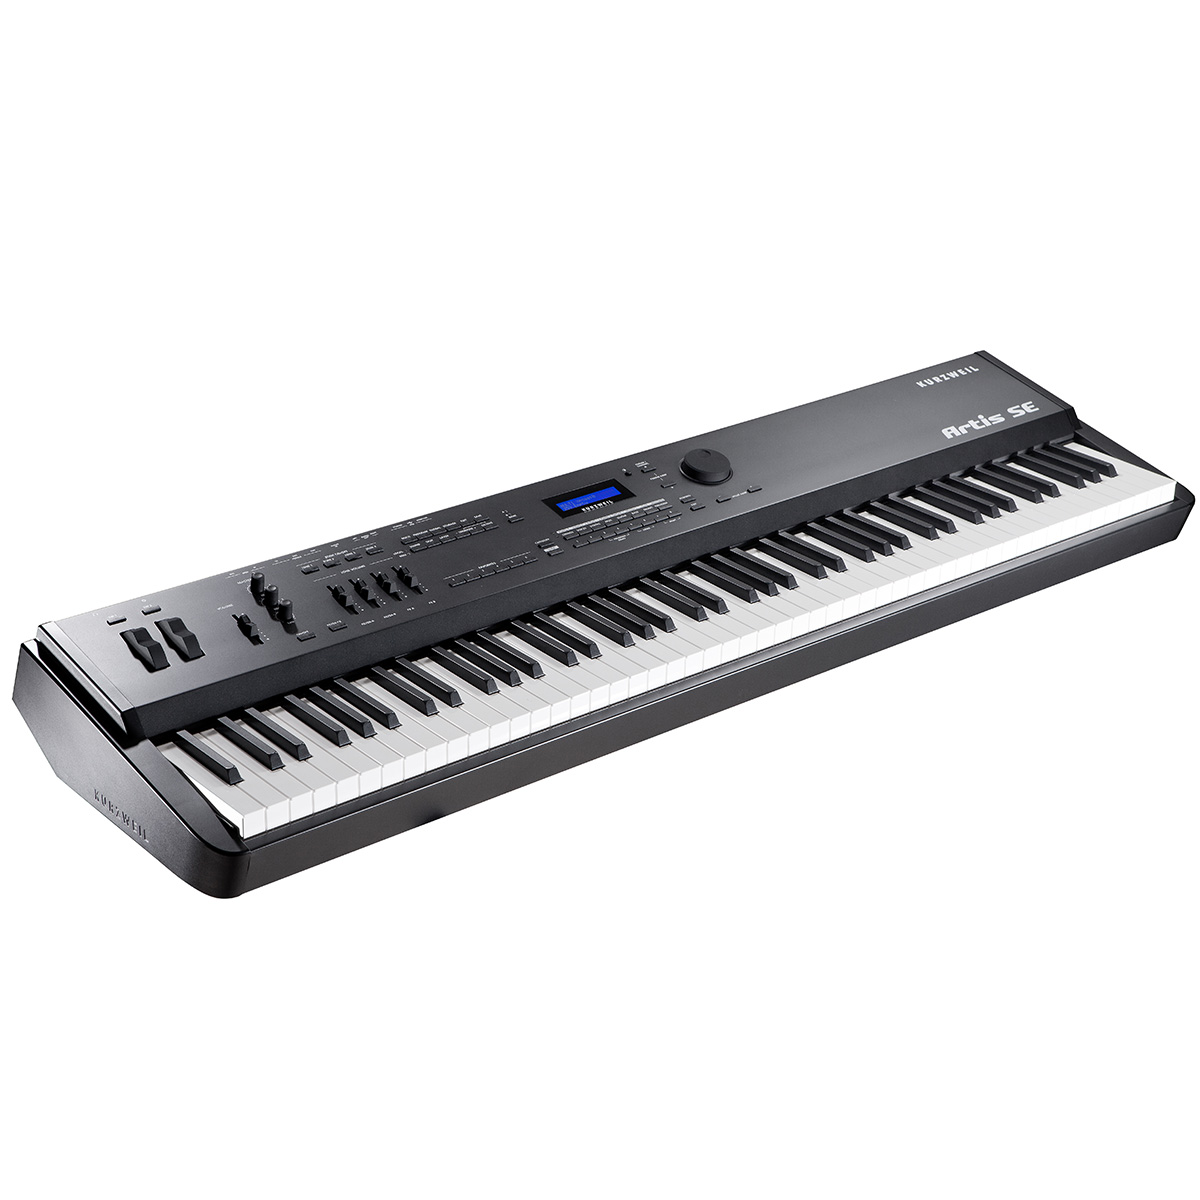 KURZWEIL ARTIS SE: 88 Fully-Weighted Stage Piano